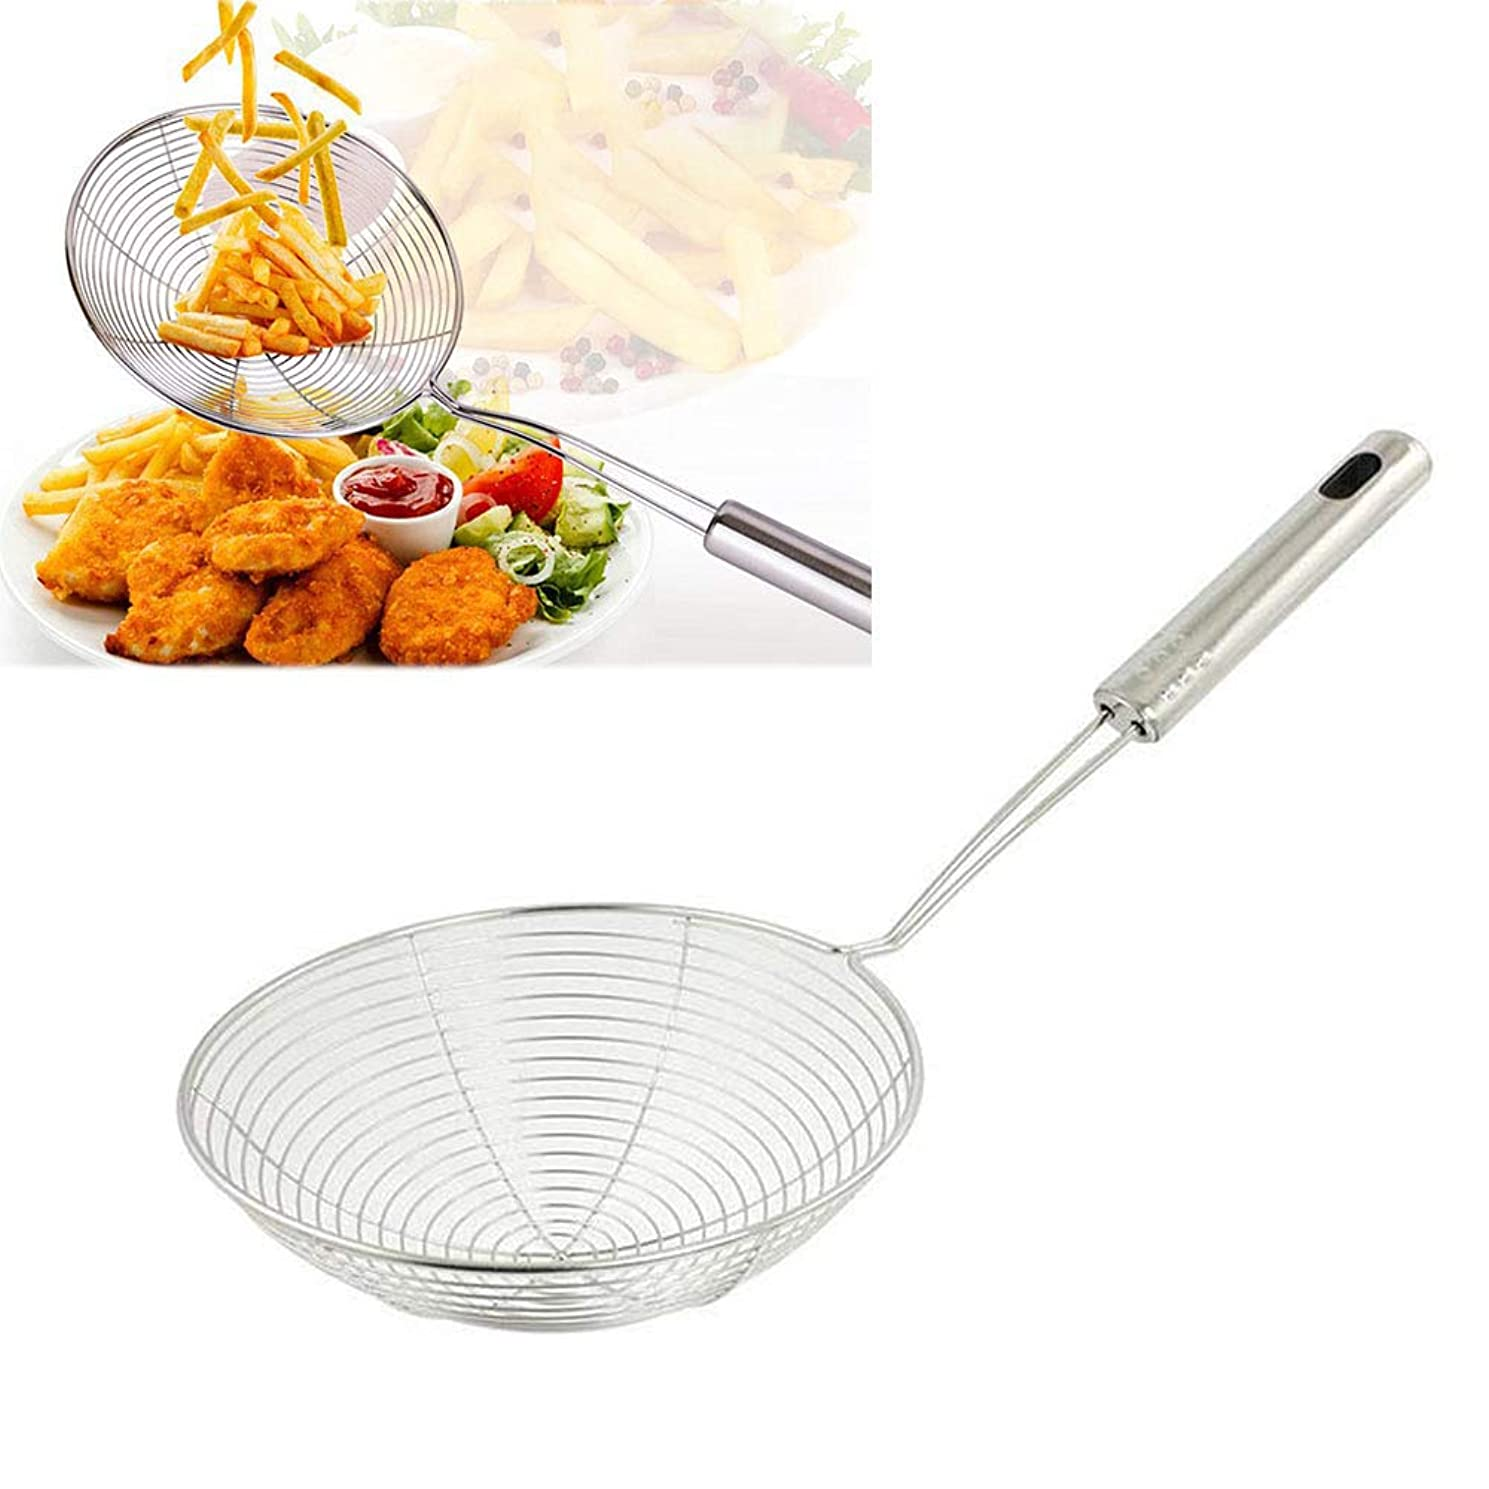 Stainless Steel Frying Food Spoon Wire Skimmer Mesh Strainer Cookware Filter?Kitchen Tool